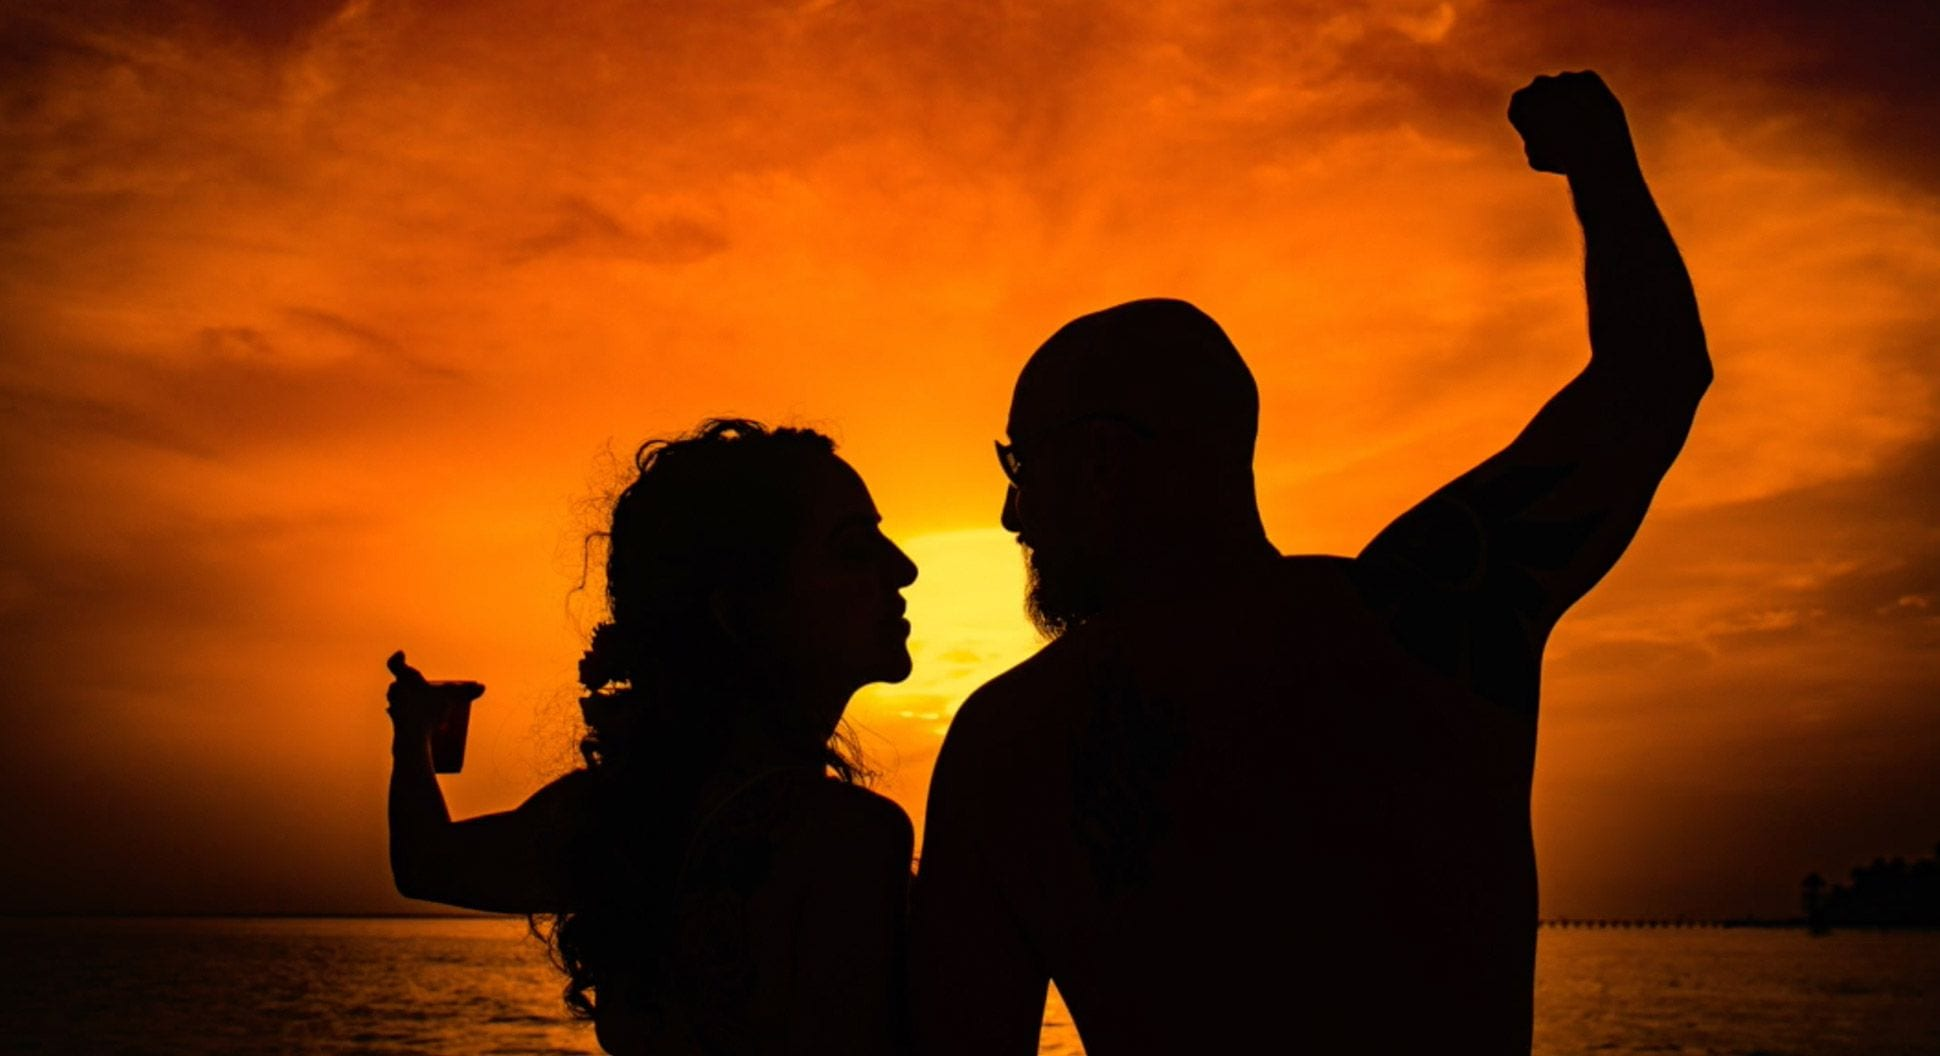 Michelle and her husband toasting sunset on the beach